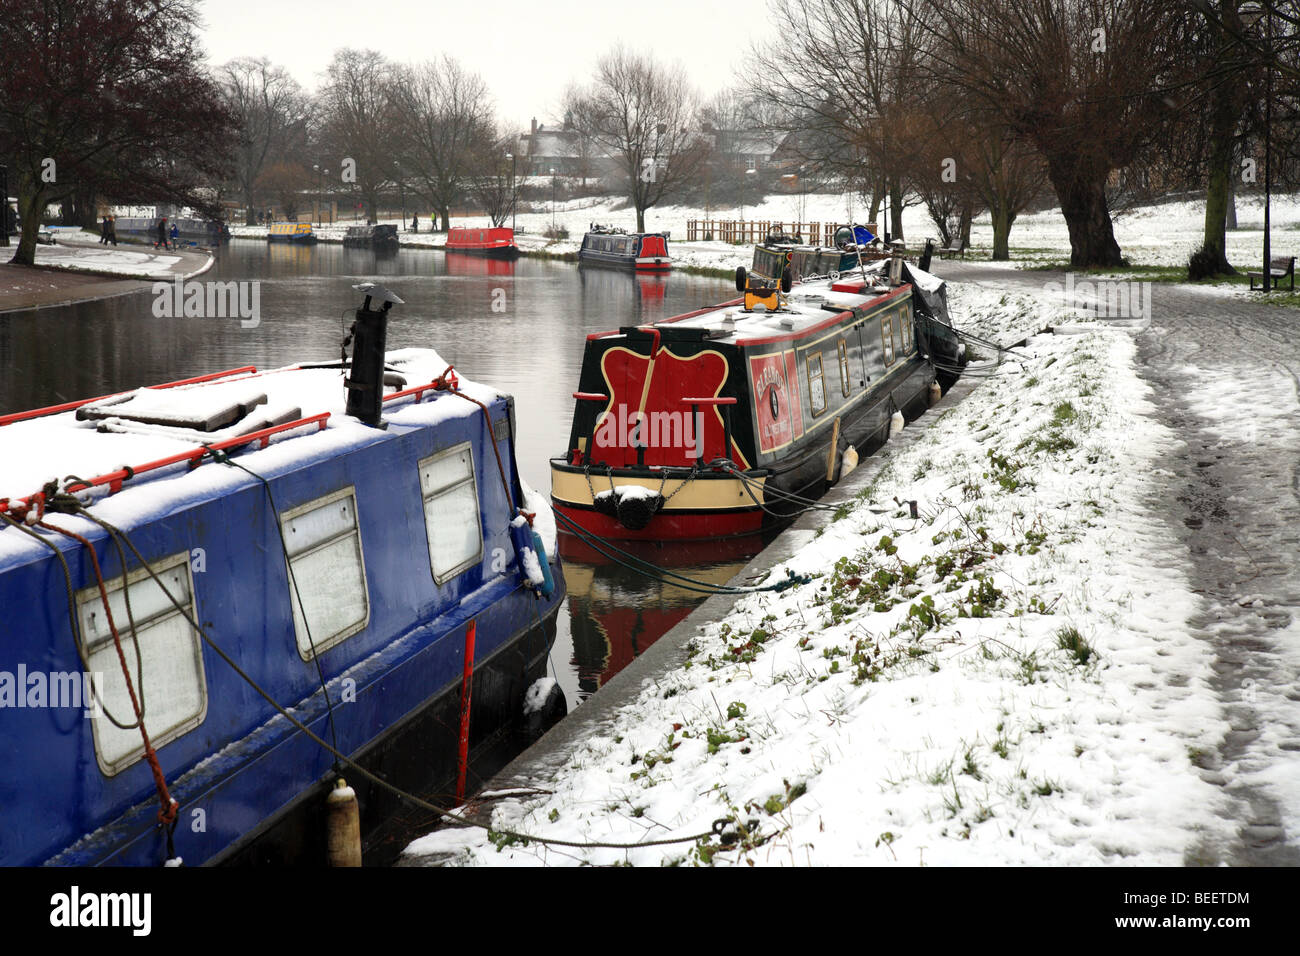 Canal boats in the Snow, moored on the River Cam, Winter, Cambridge, England, UK - Stock Image